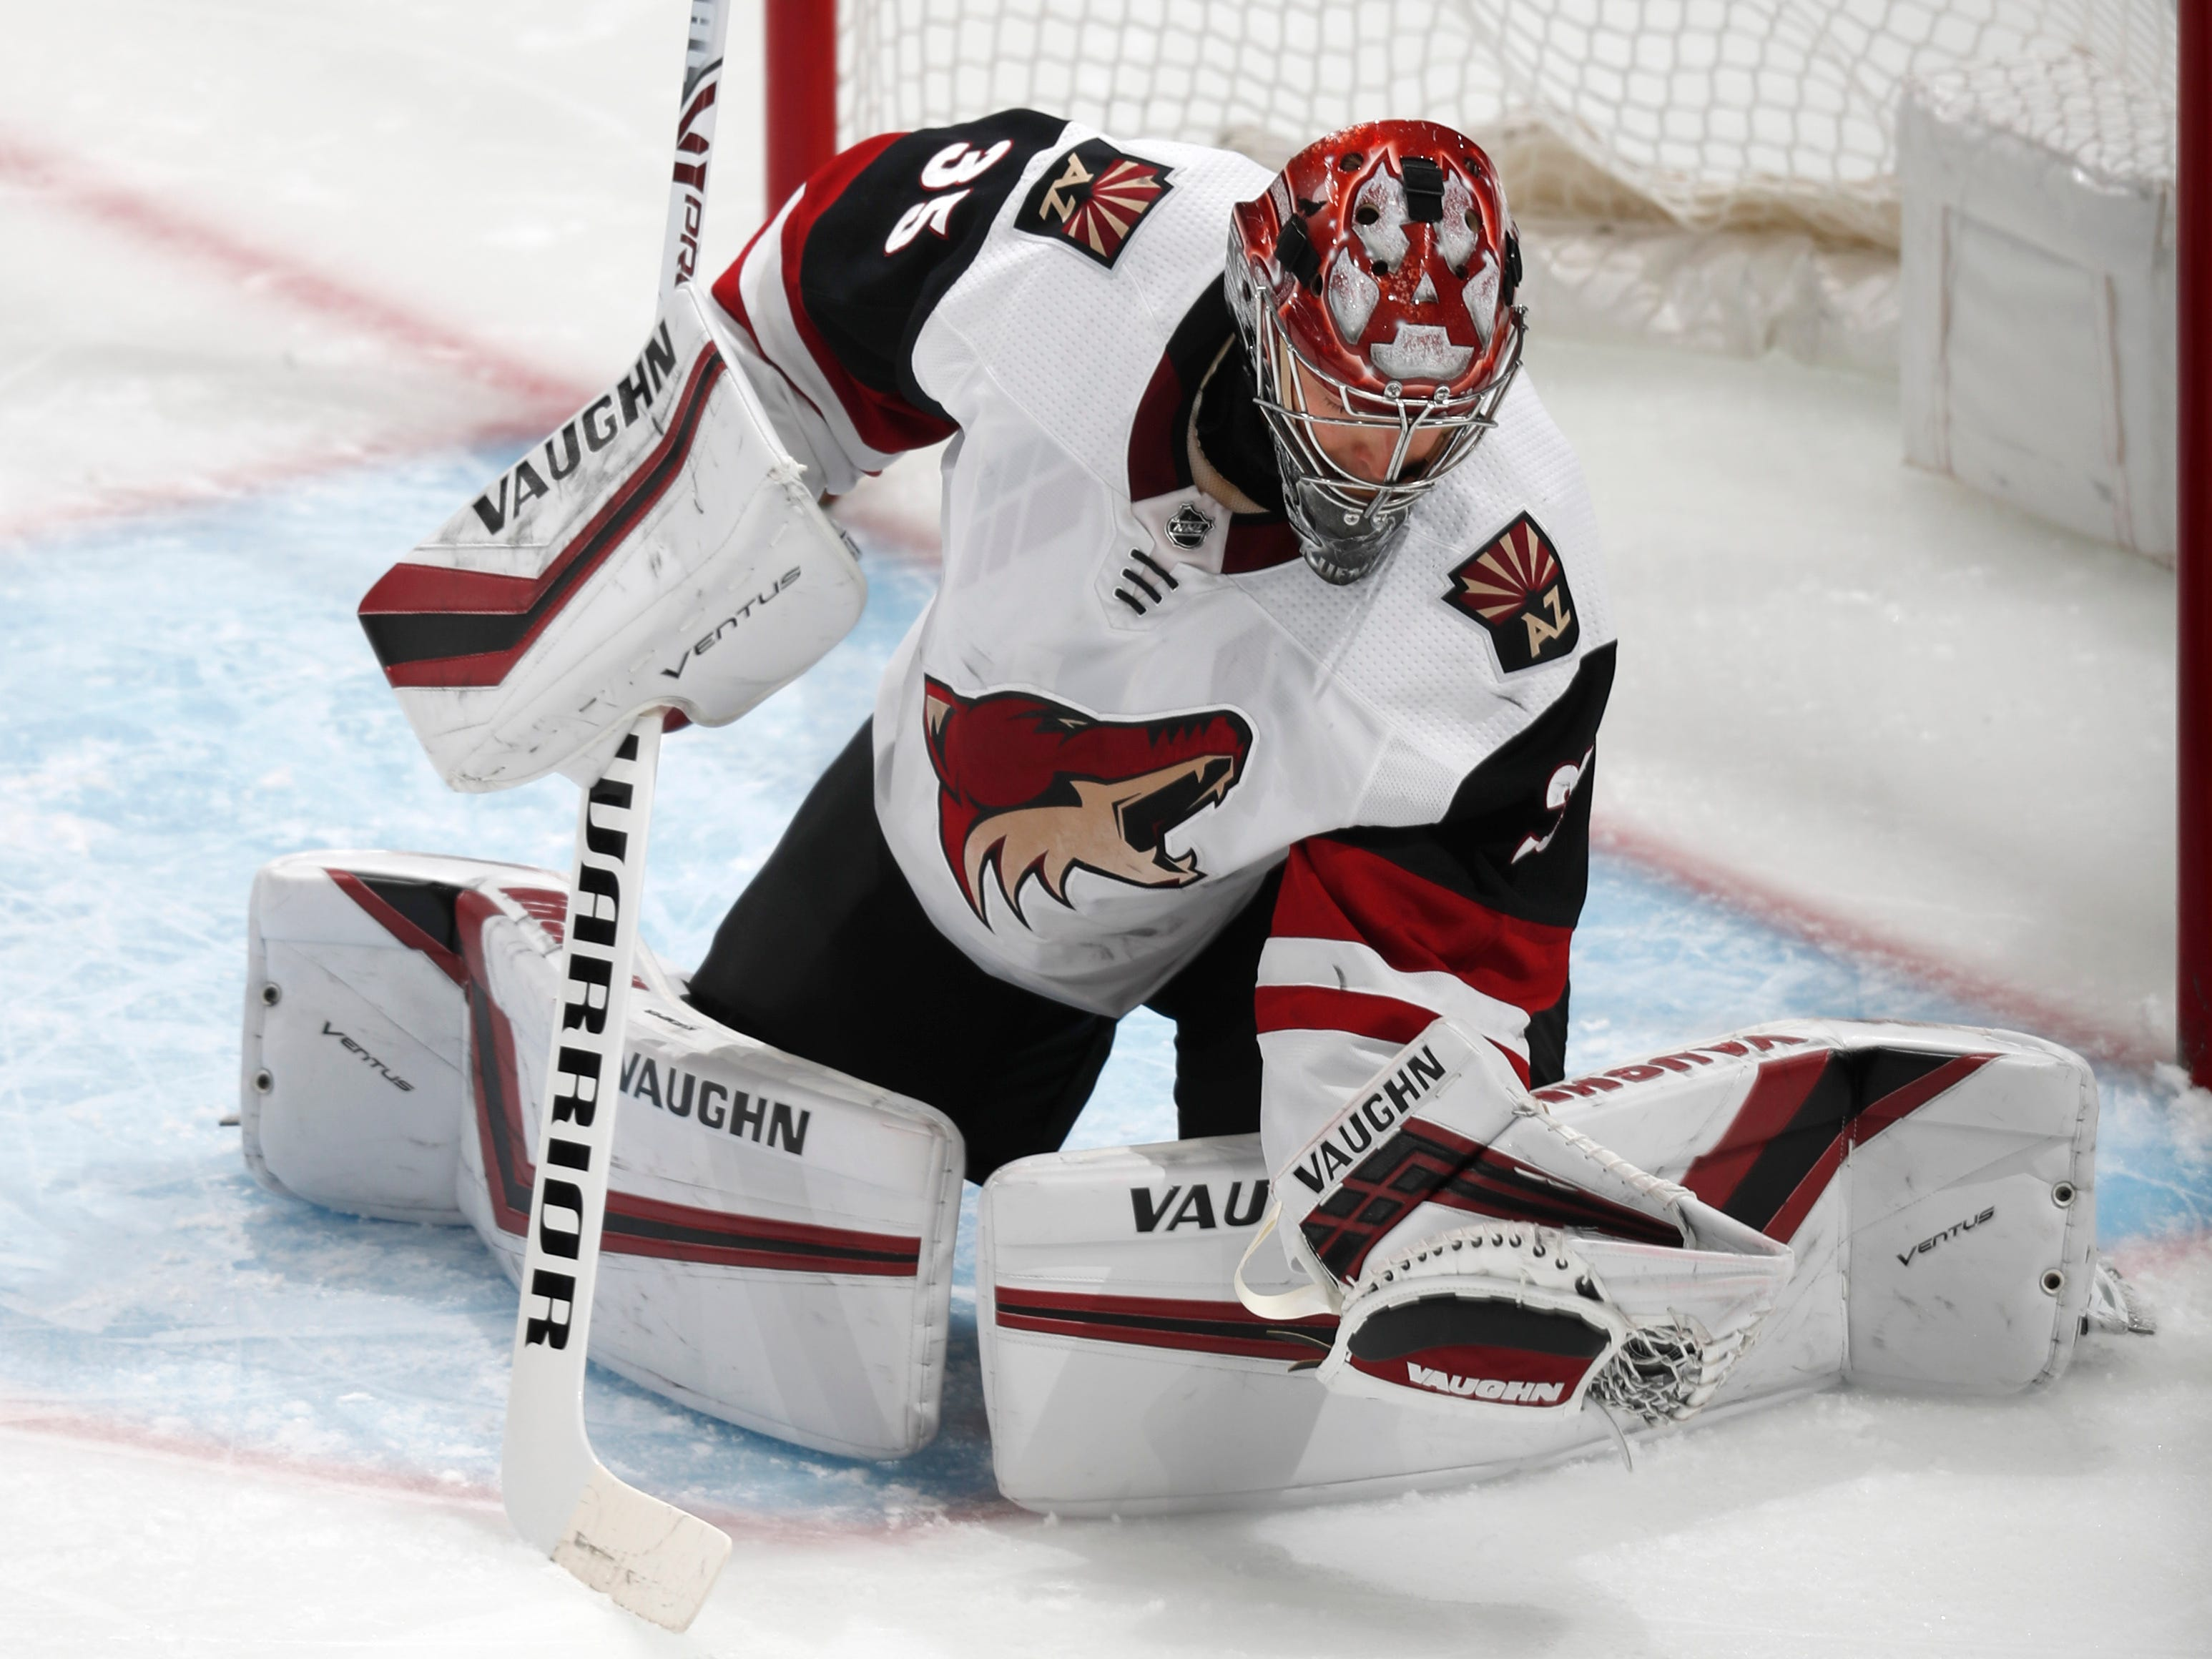 Arizona Coyotes goaltender Darcy Kuemper makes a glove-save against the Colorado Avalanche in the first period of an NHL hockey game Friday, March 29, 2019, in Denver.